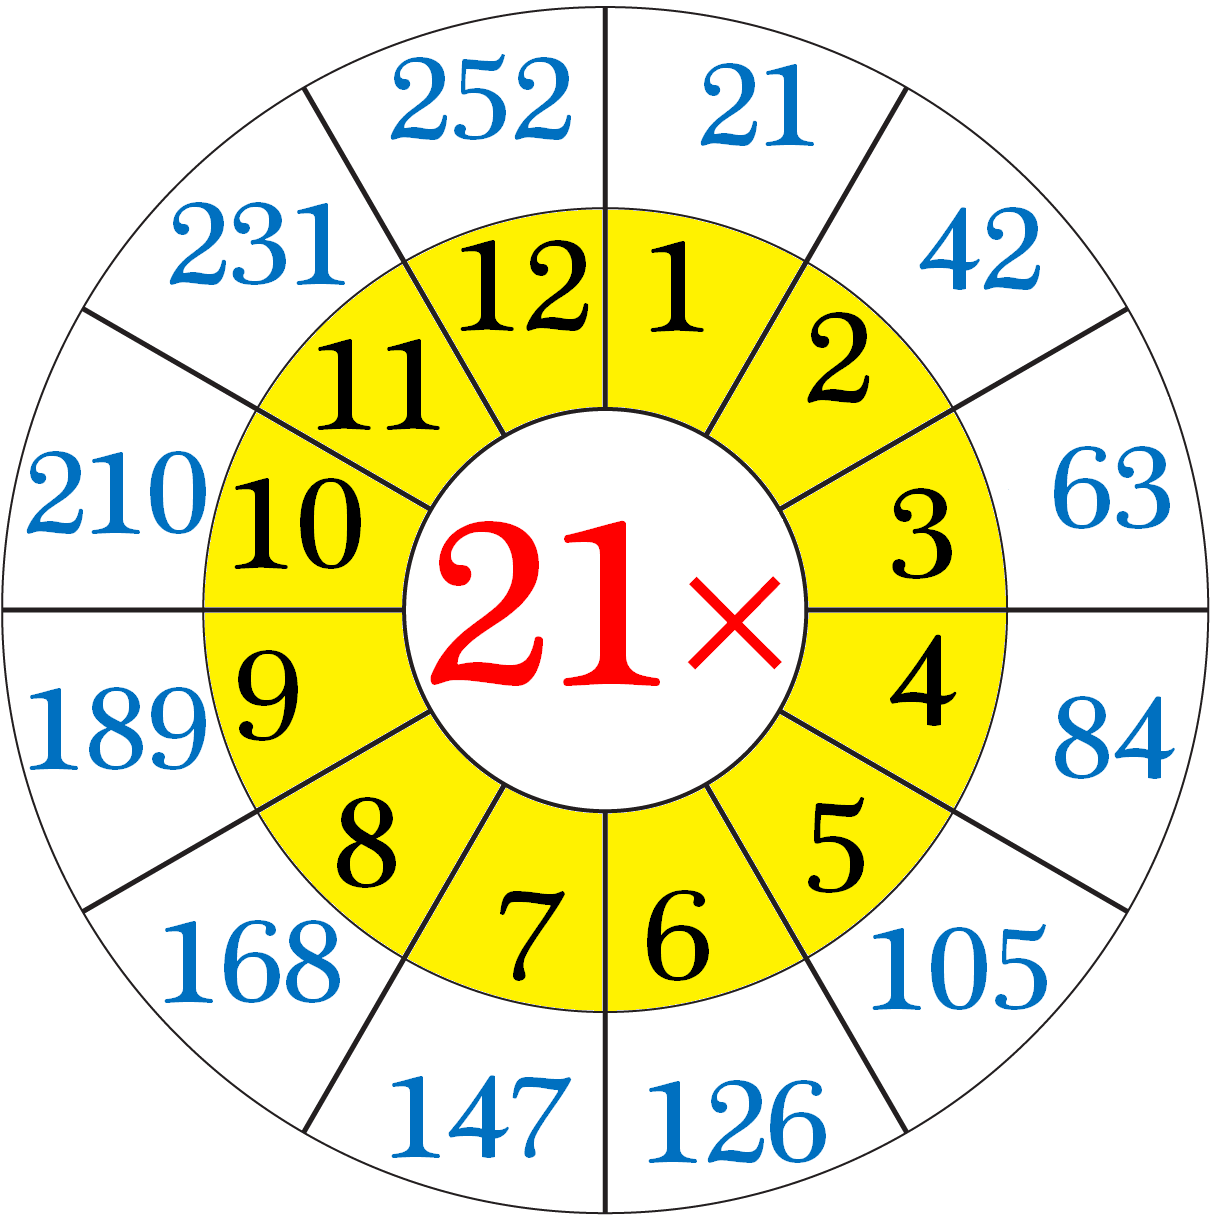 Multiplication Table of 21